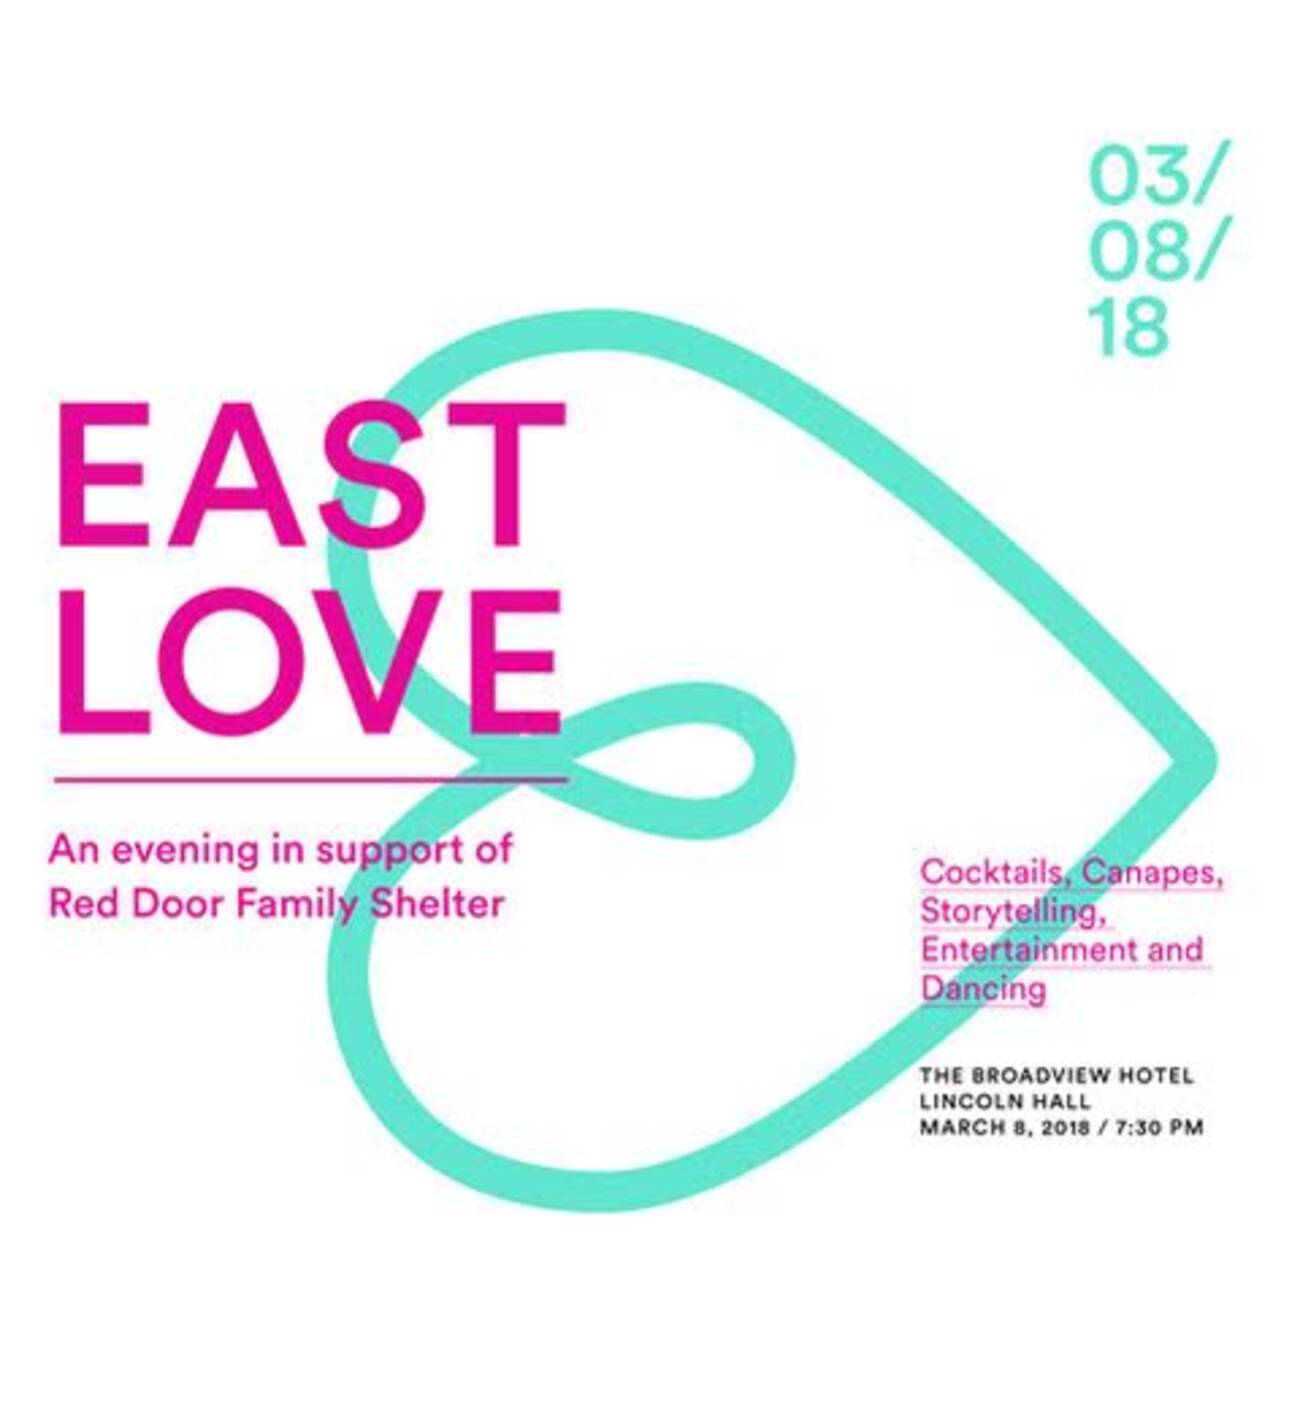 East Love An Evening Celebrating Resilience In Support Of Red Door